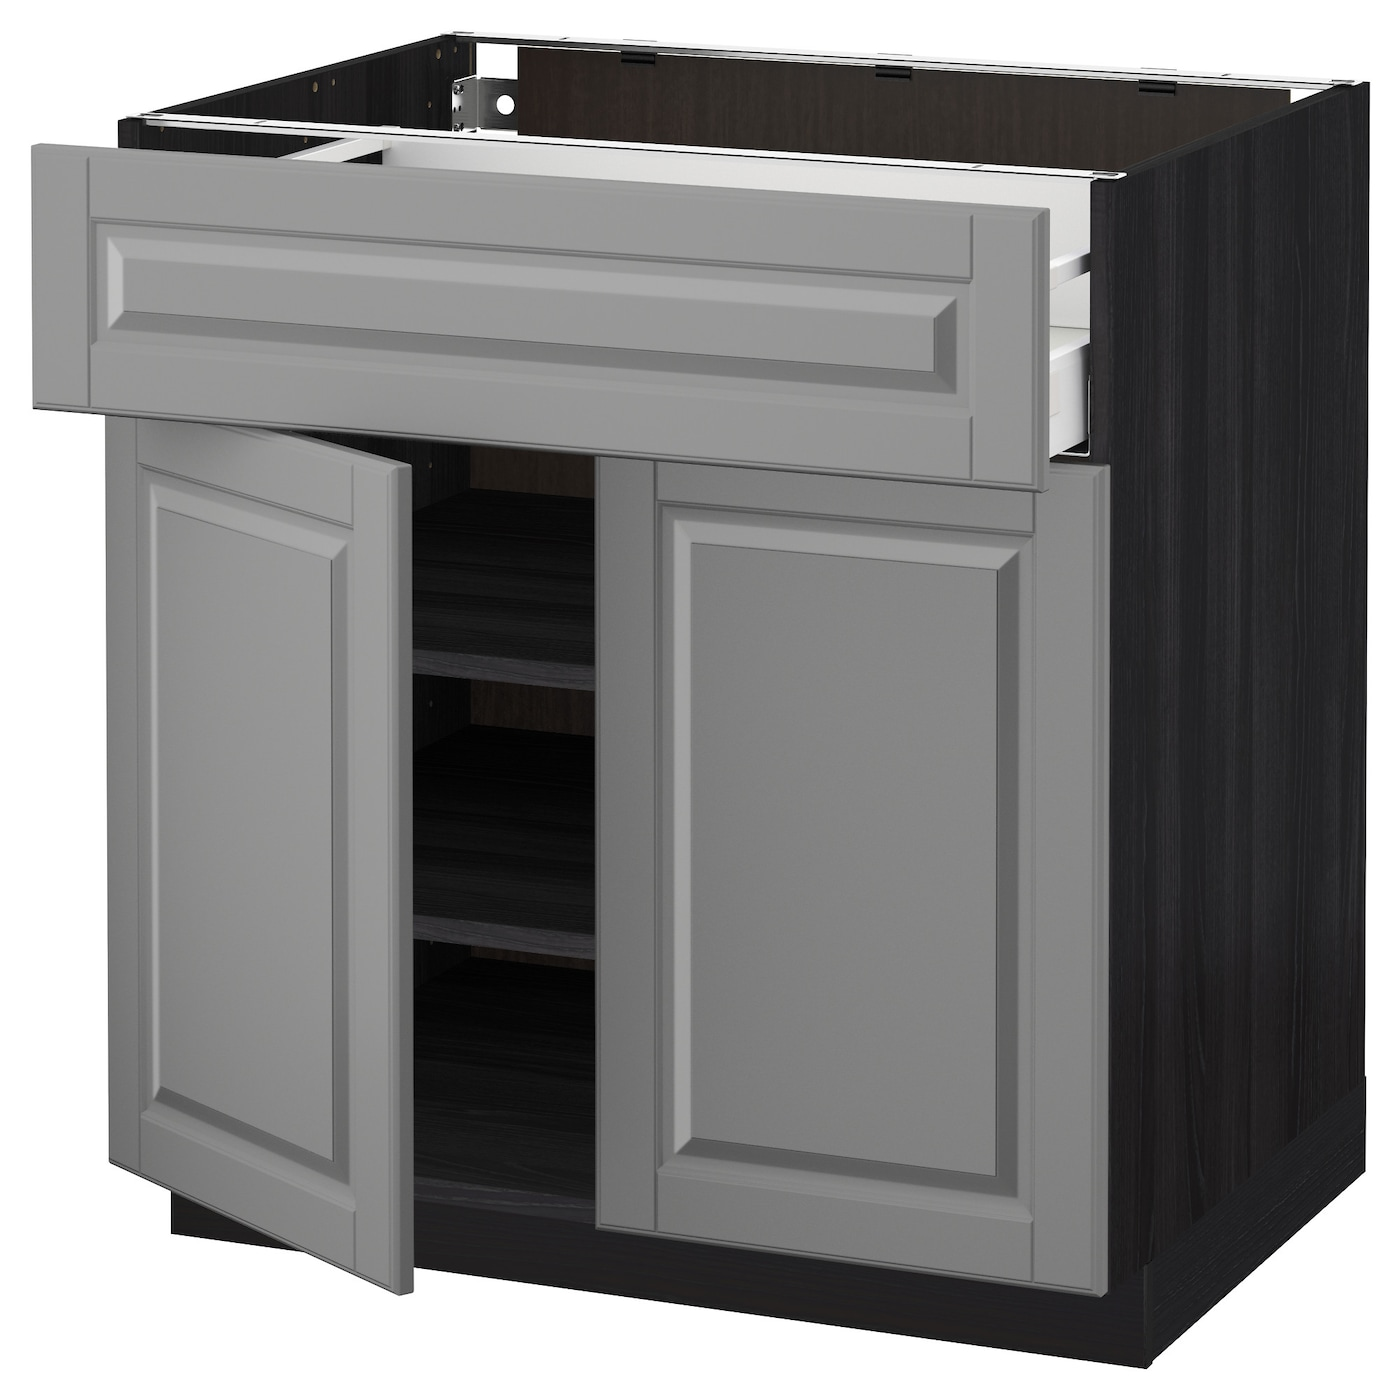 Metod maximera base cabinet with drawer 2 doors black - Ikea cabinet doors on existing cabinets ...